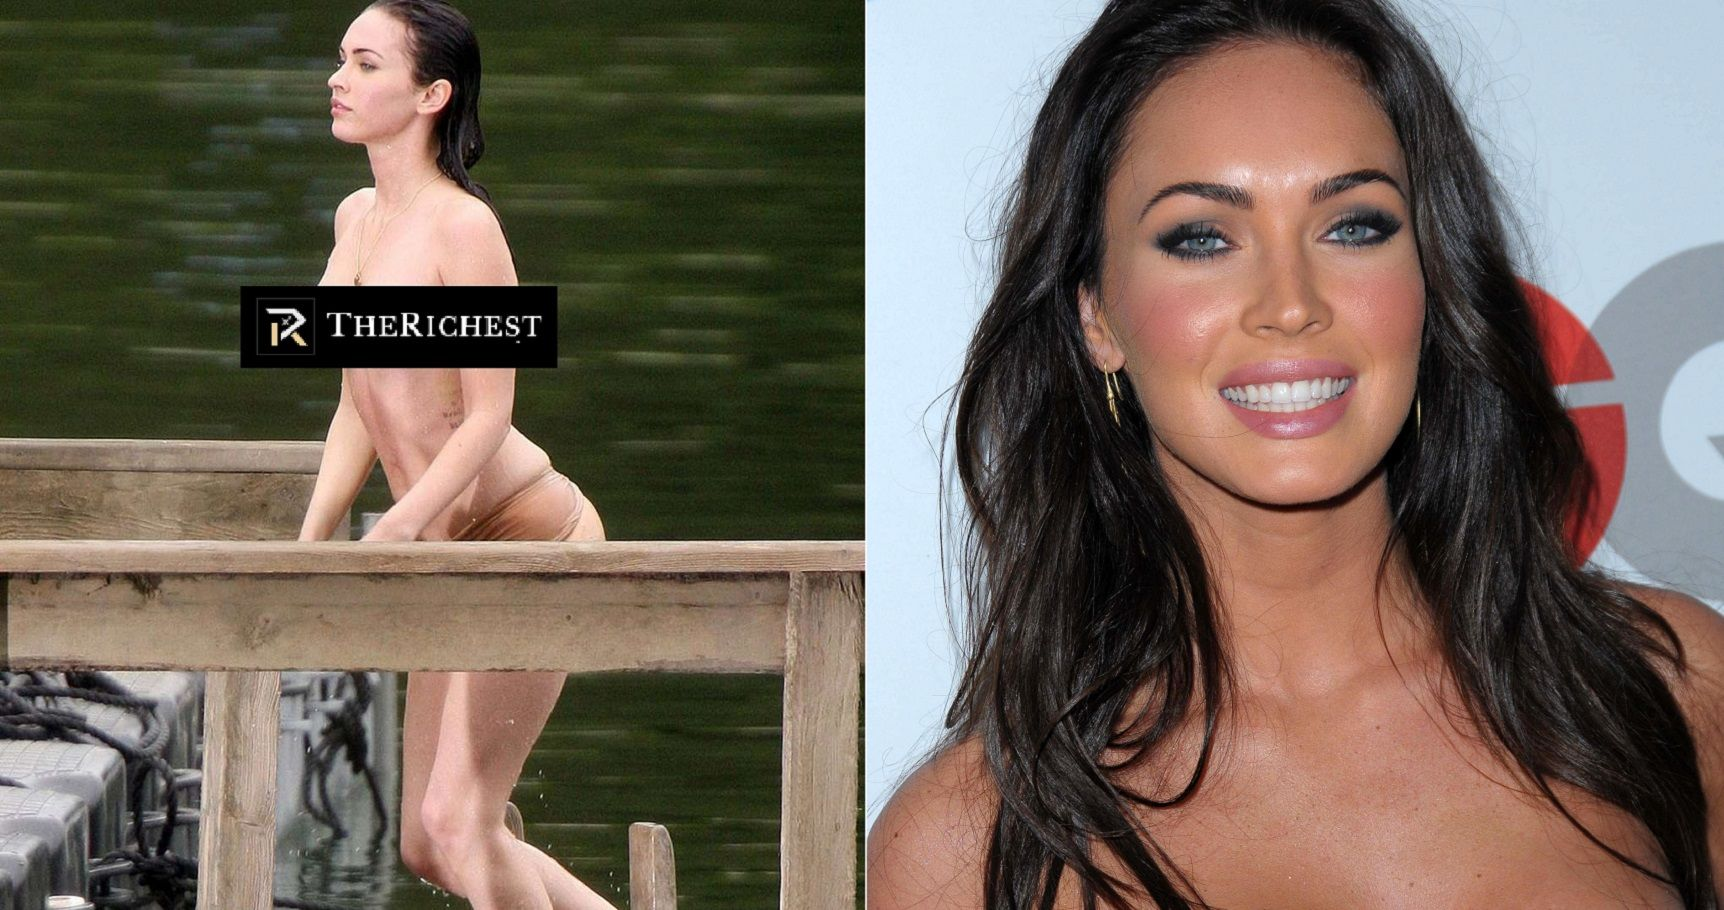 Top 20 Sexiest Paparazzi Photos Of Female Celebrities